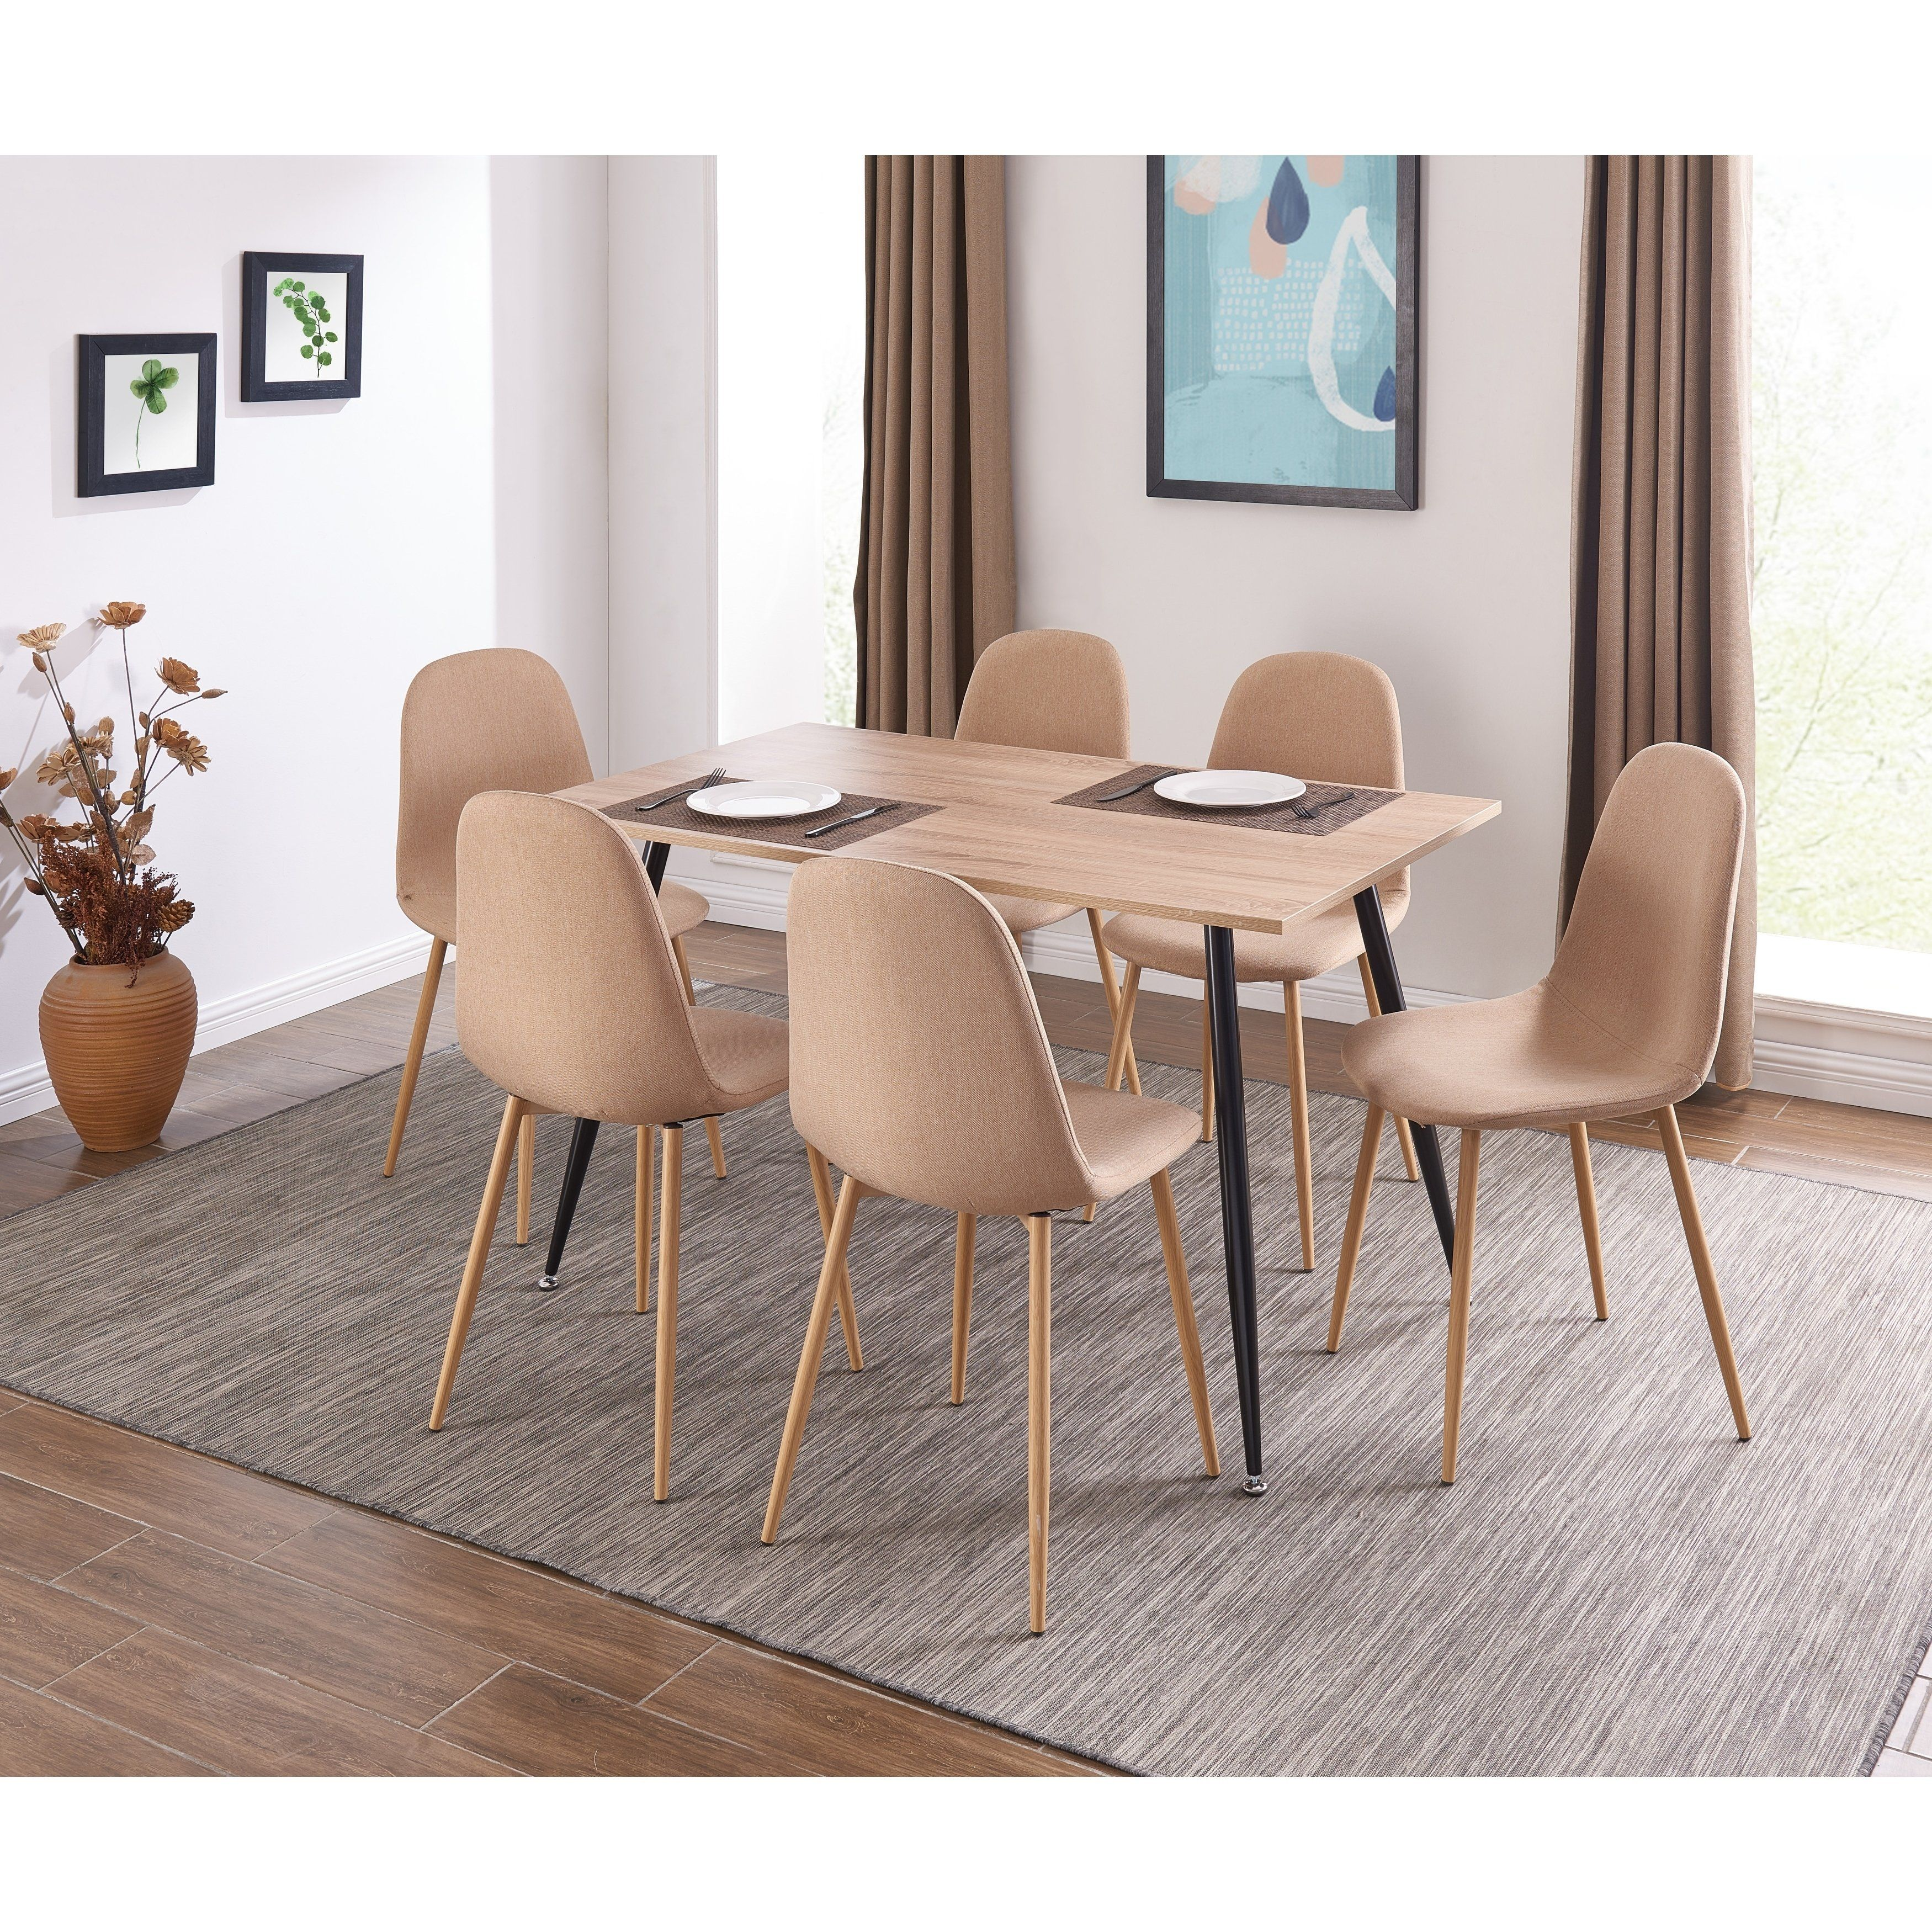 Ids Oinline Modern Style Designed Dining Table Wooden Look Mdf Top